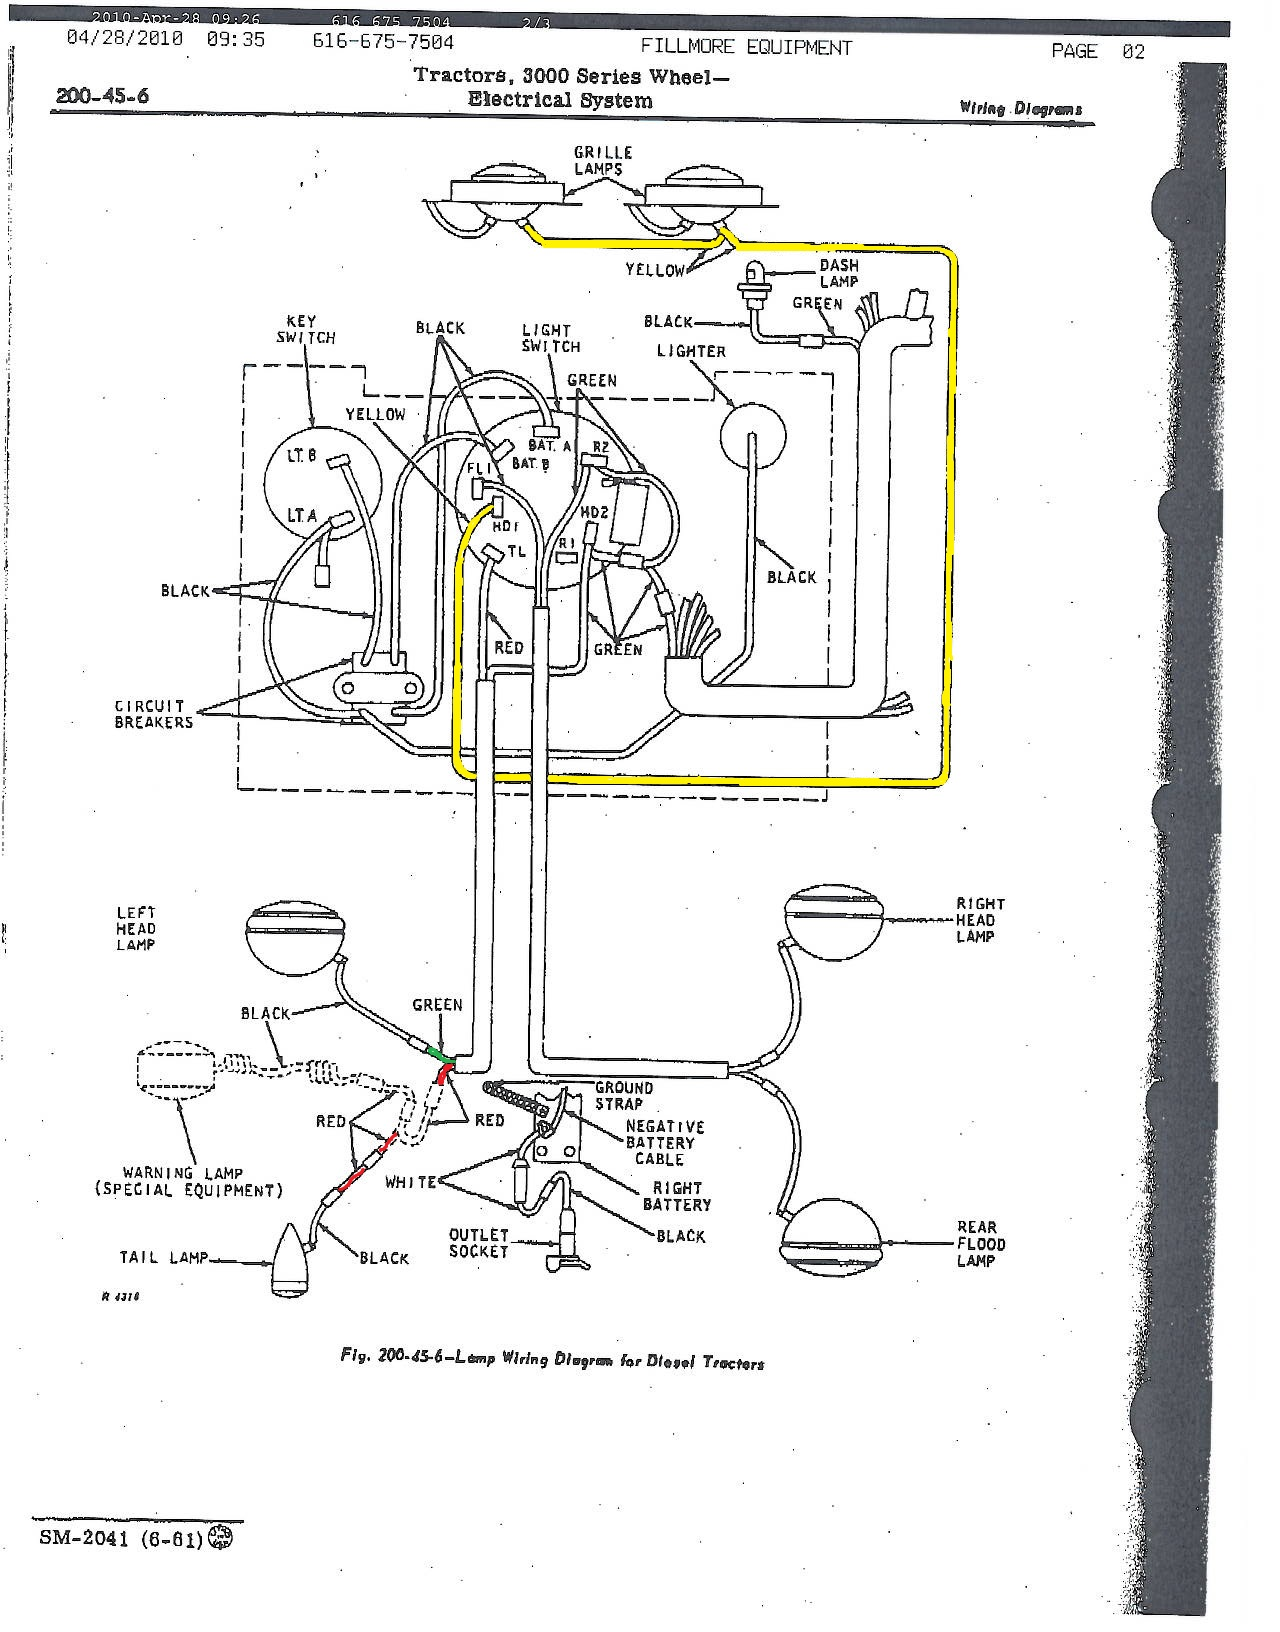 John Deere Ignition Switch Wiring Diagram